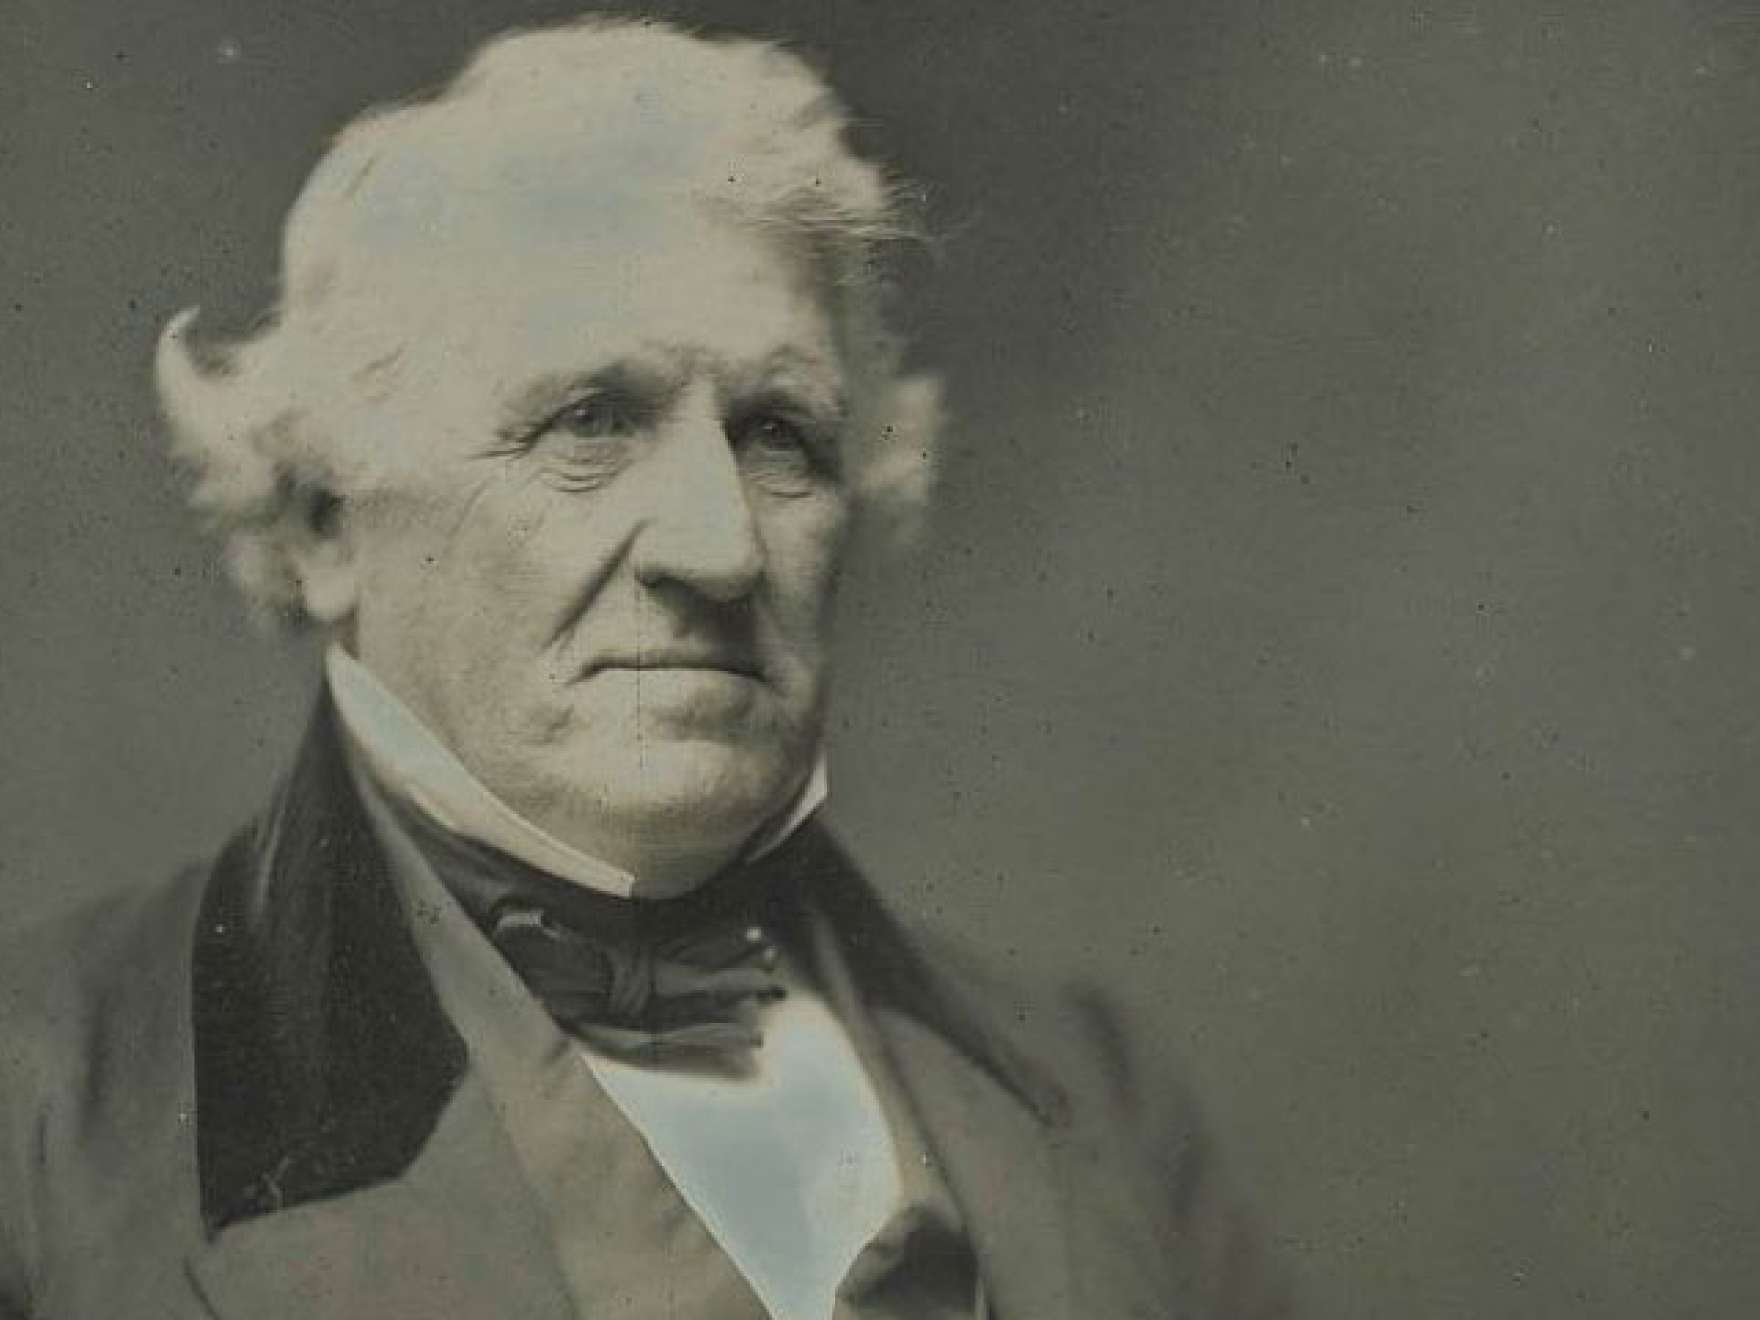 Detail of Southworth and Hawes' photograph (daguerreotype) of Benjamin F. French